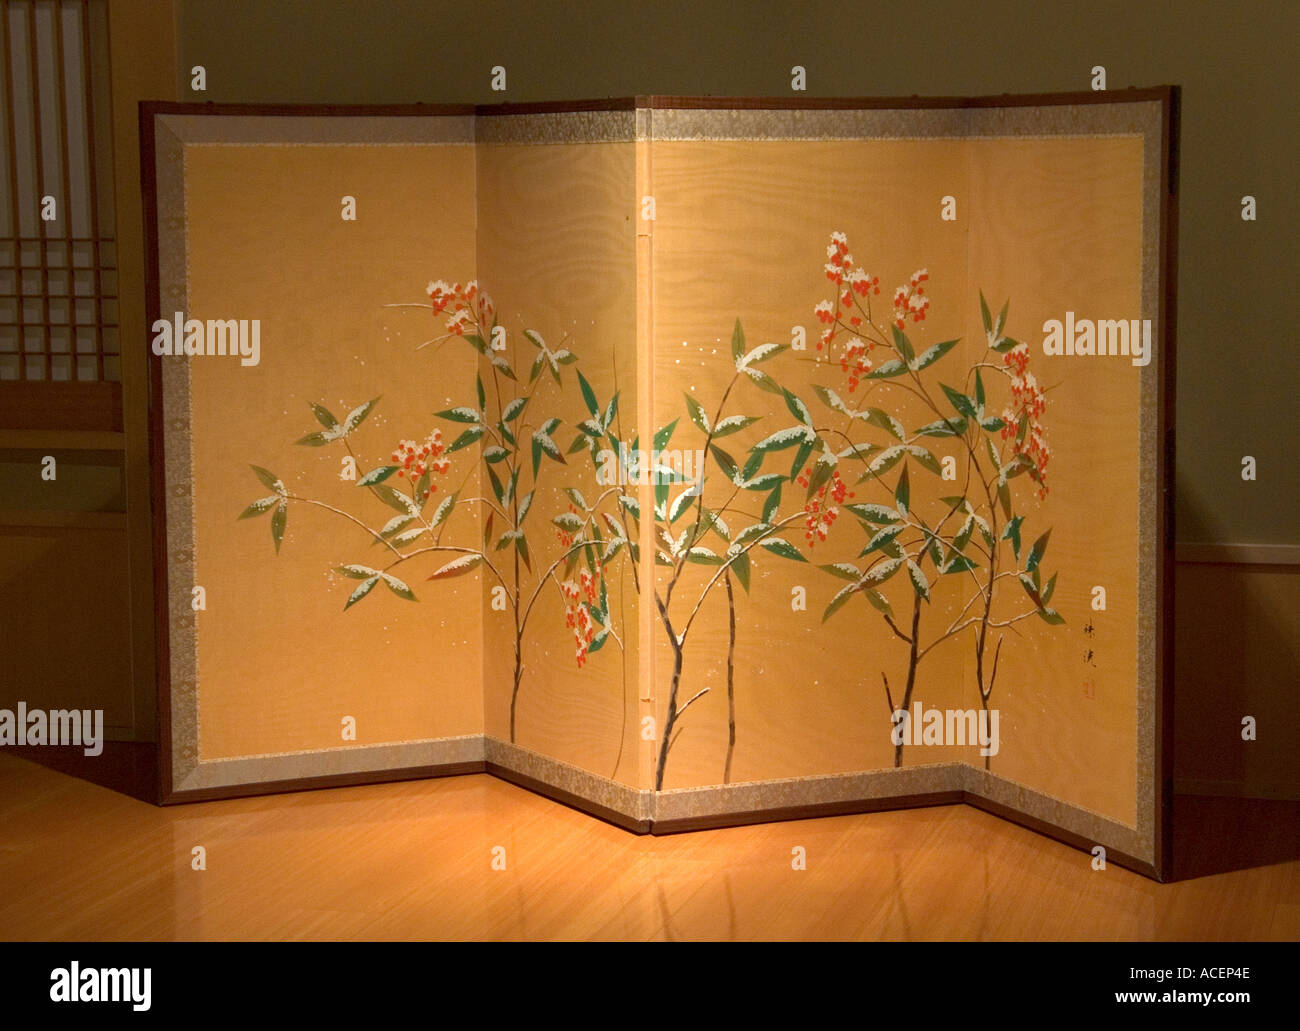 Antique folding screen with winter flower scene against gold background Stock Photo